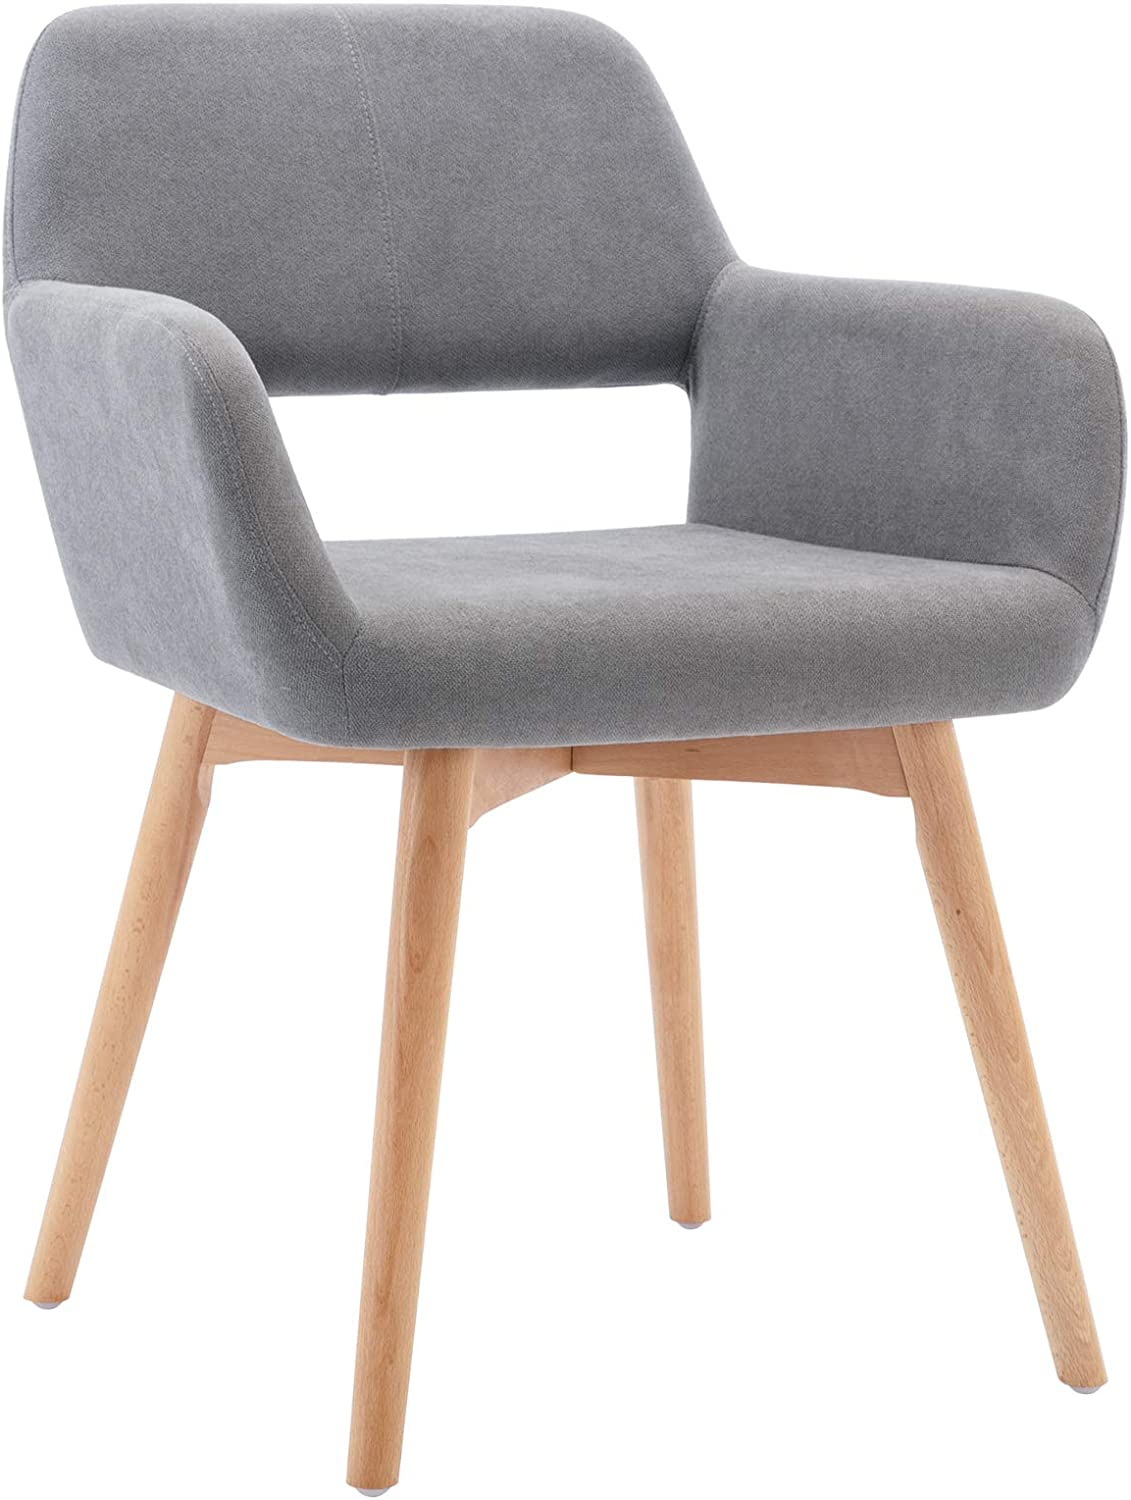 Lansen Furniture Modern Living Dining Room Accent Arm Chairs Club Guest with Solid Wood Legs (1, Light Grey)